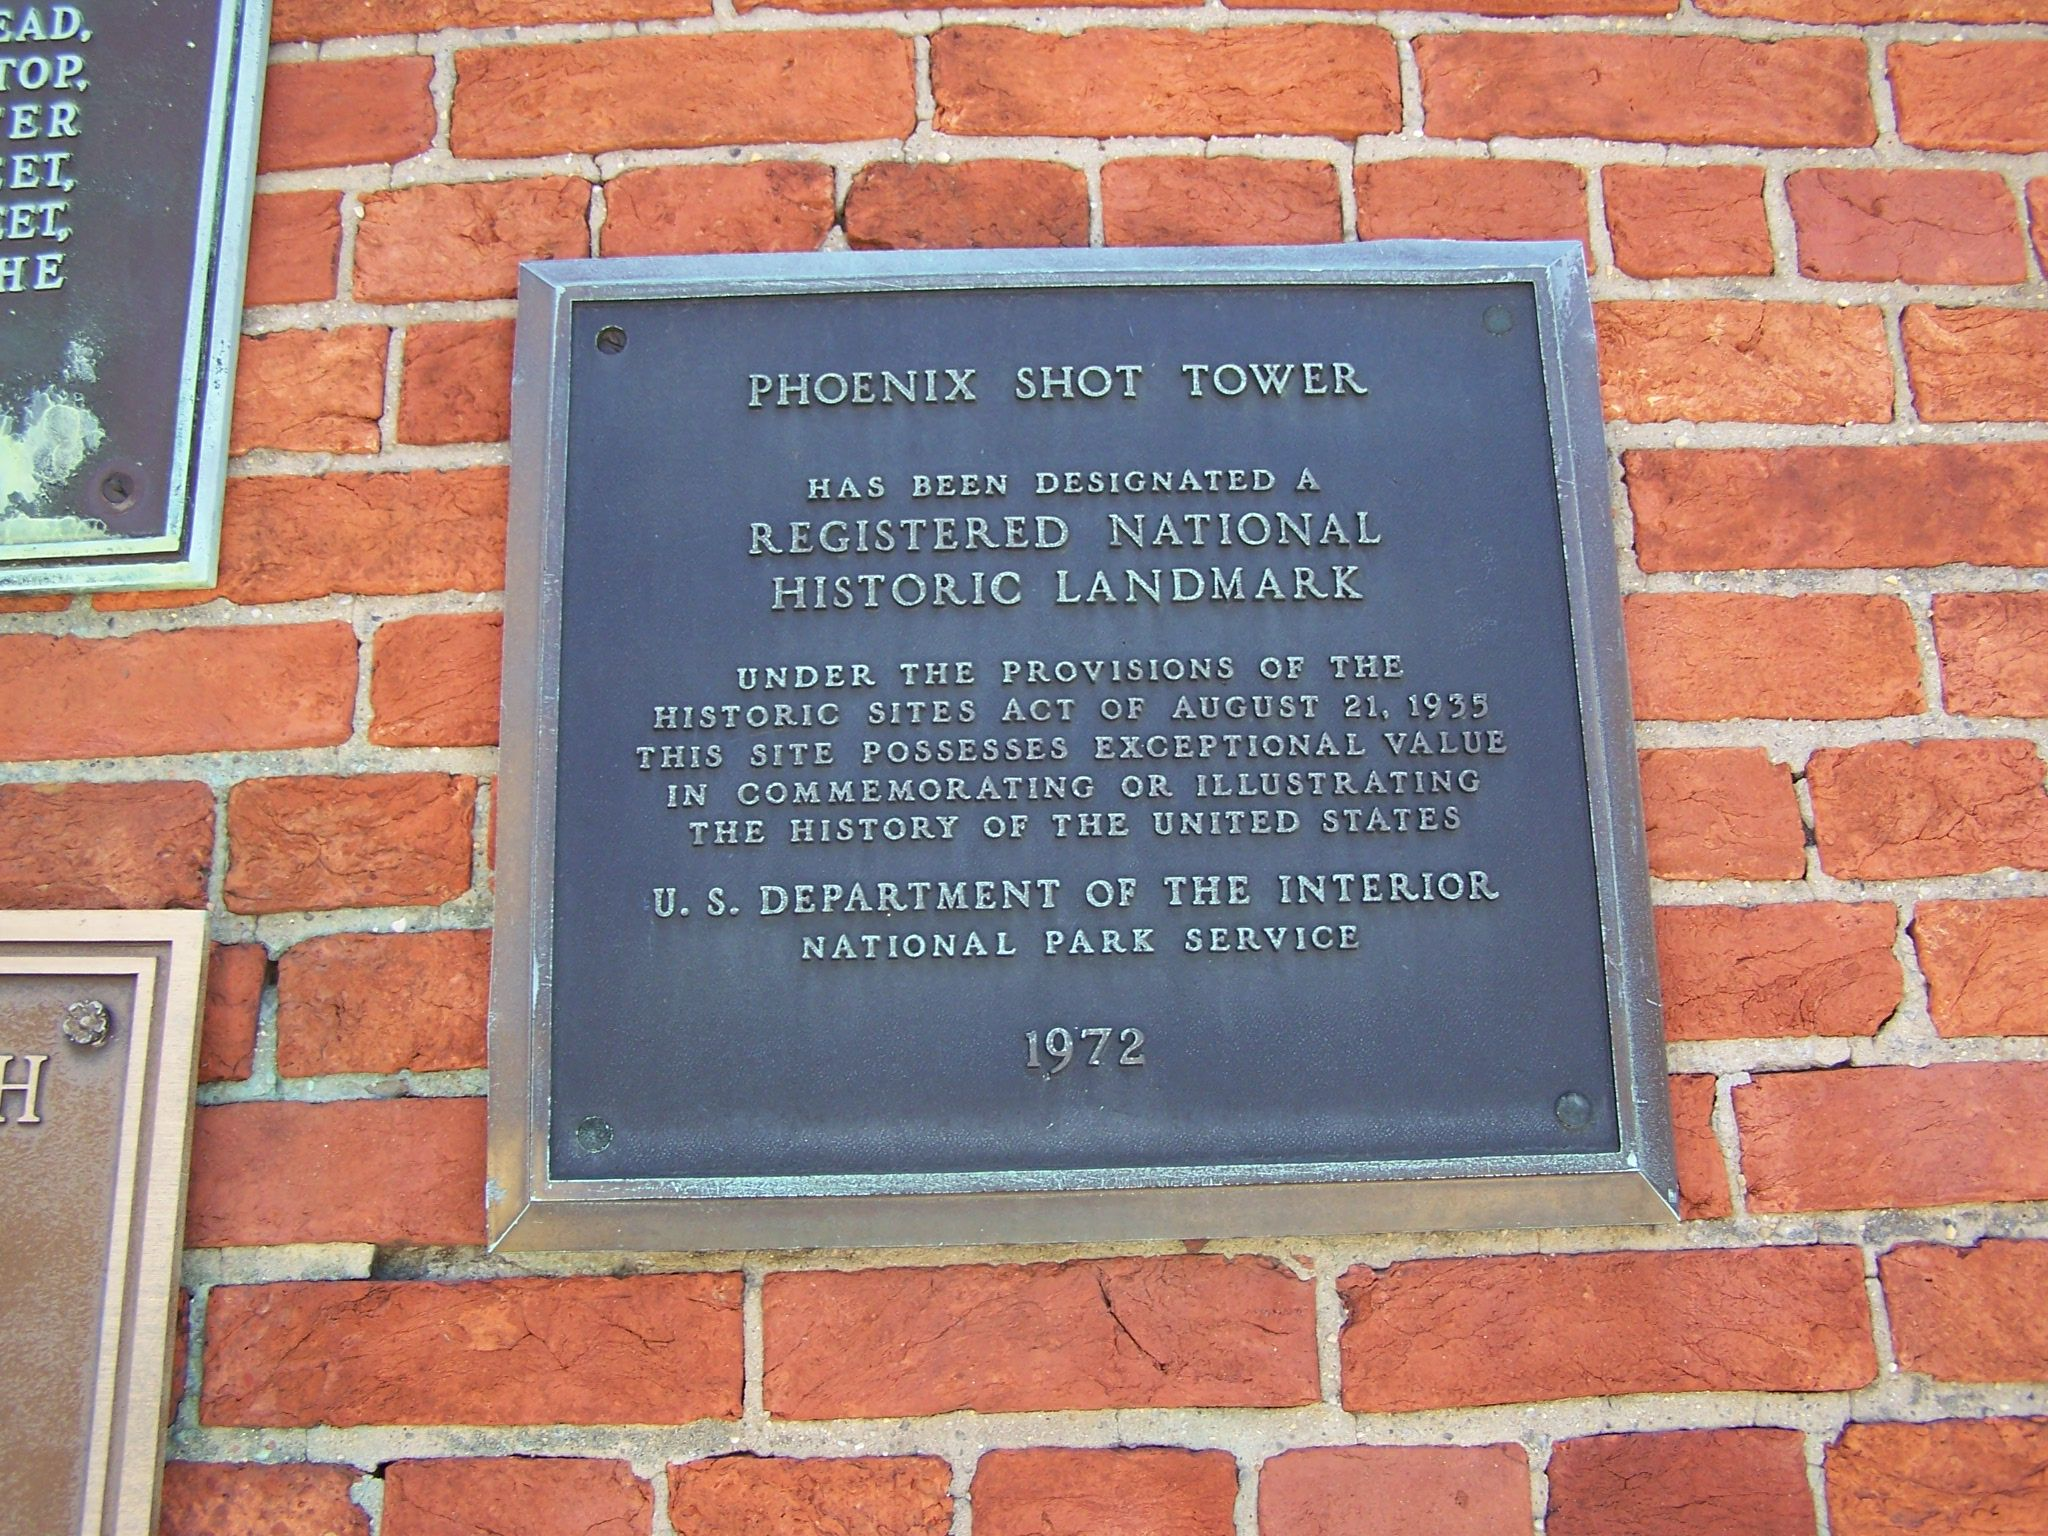 Registered National Historic Landmark